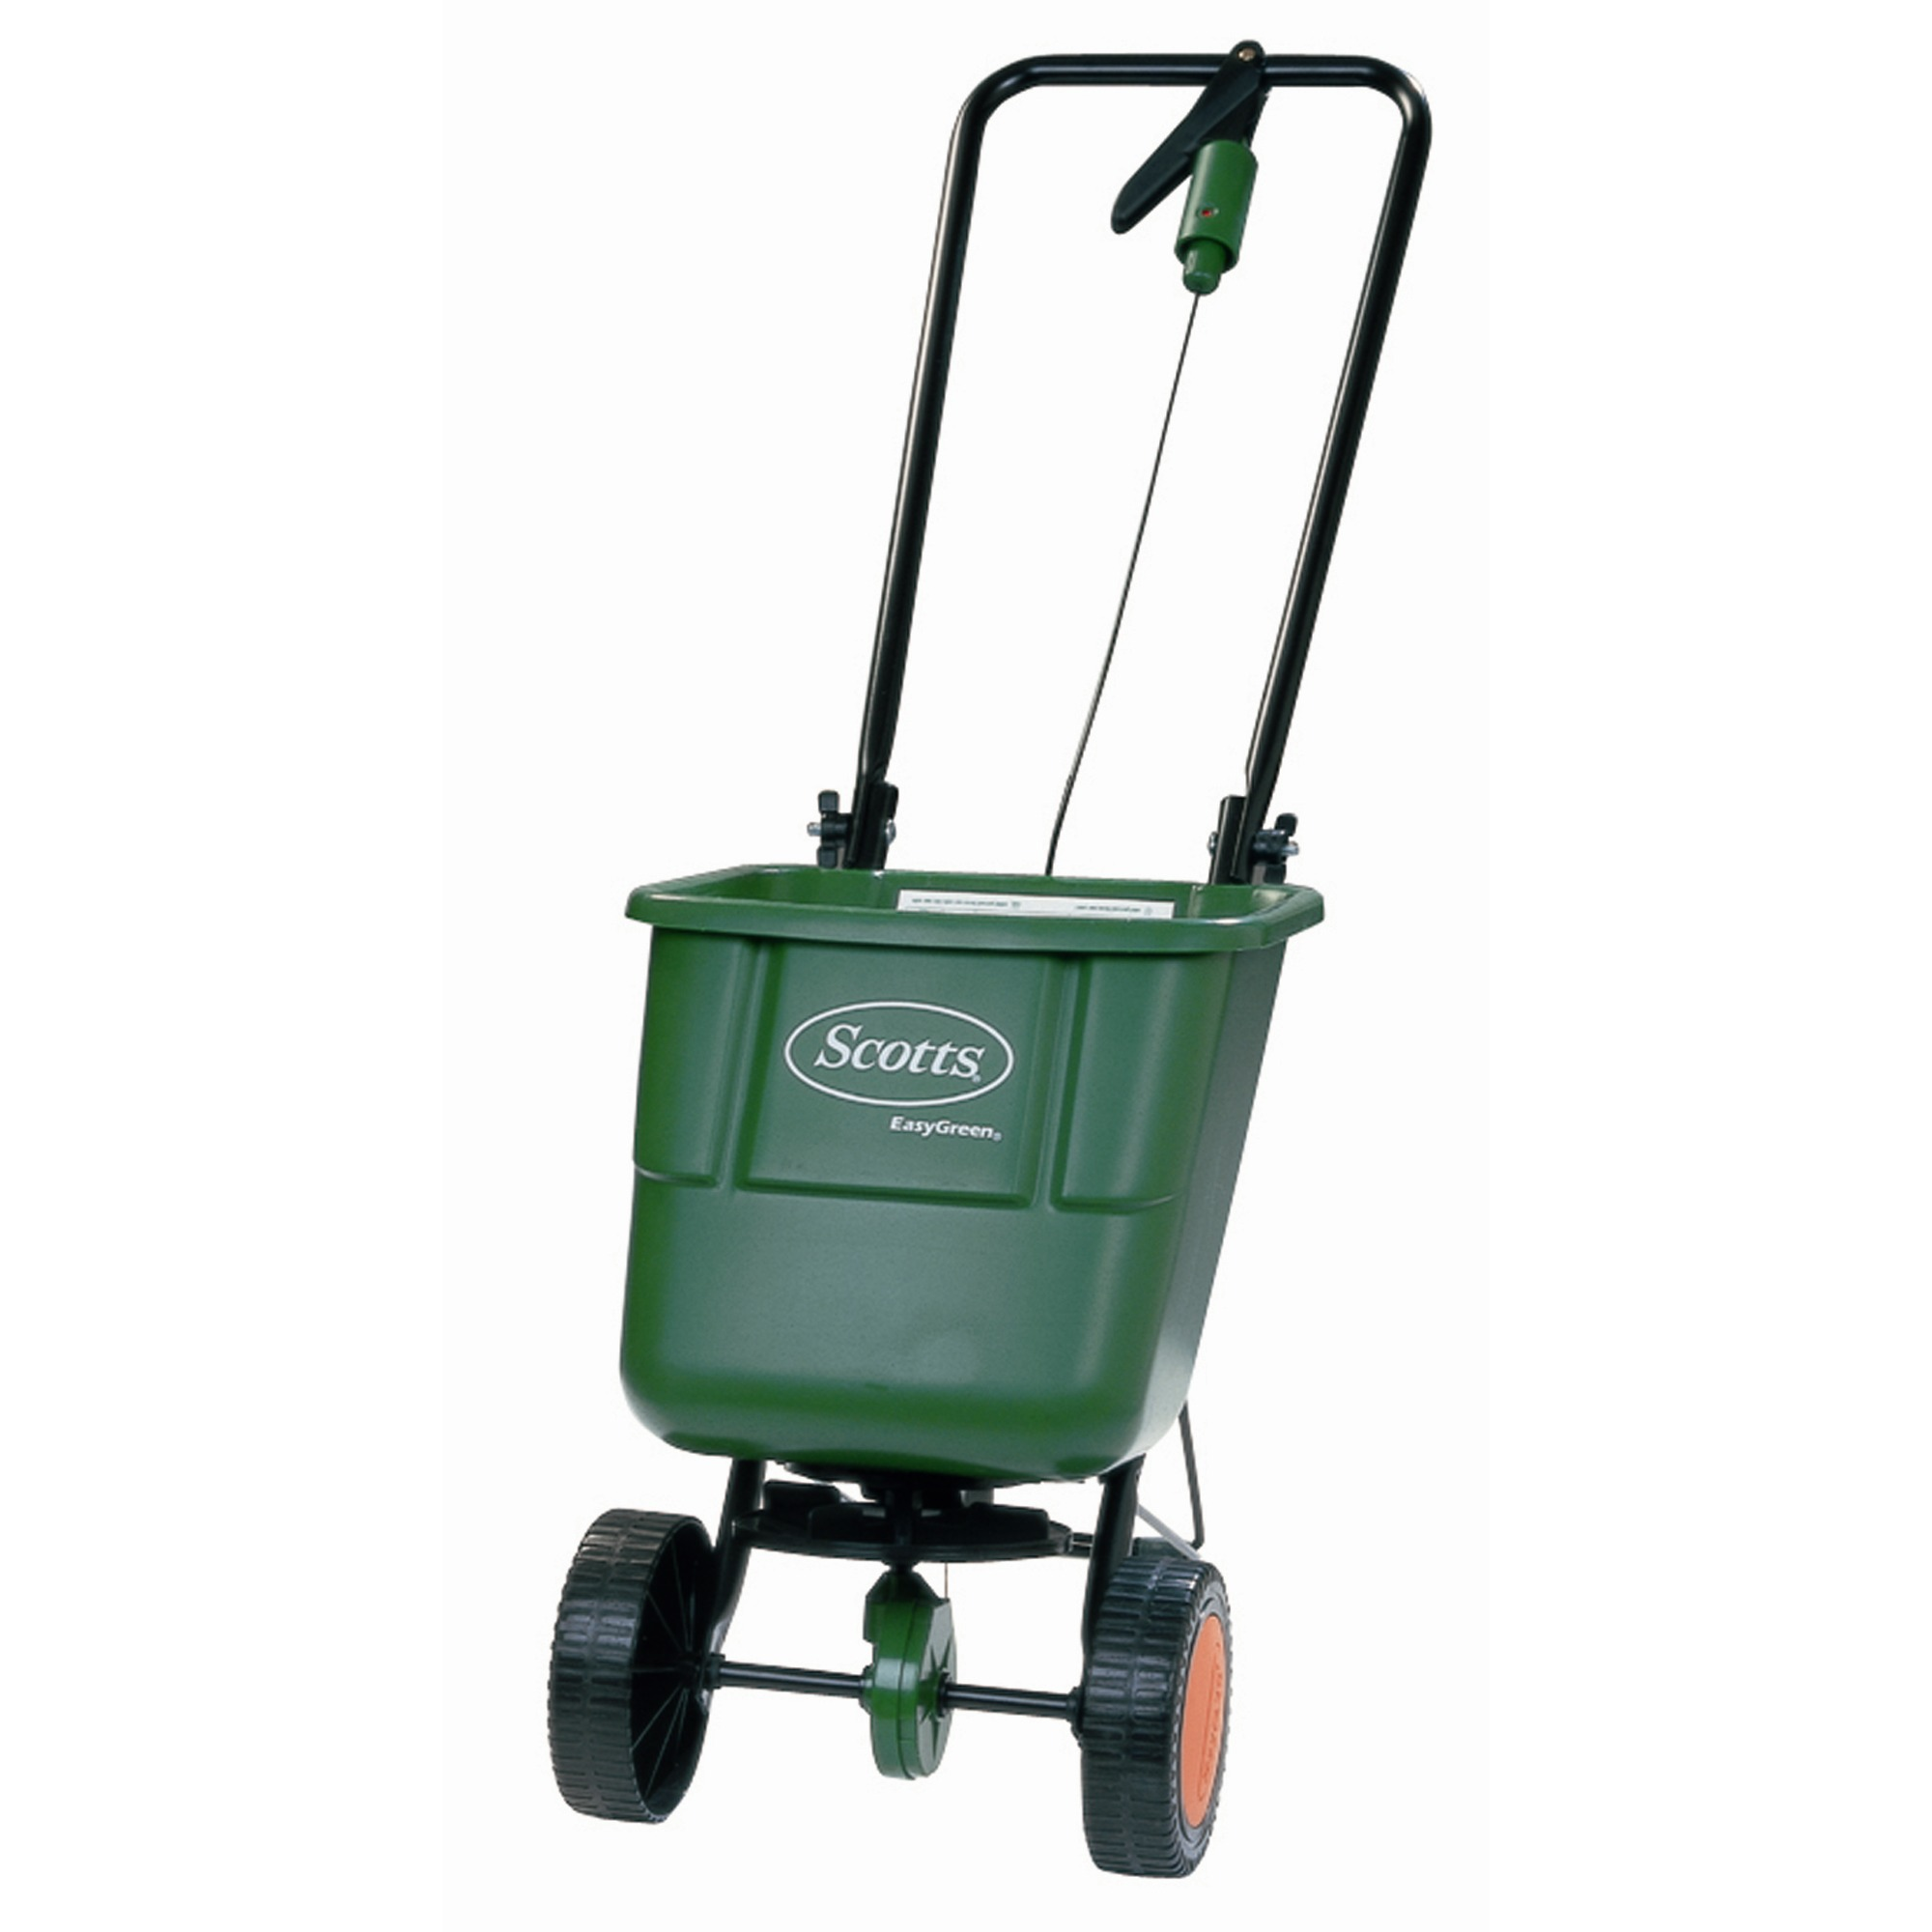 Scotts easy green pandeur rotatif autres articles de for Articles de jardinage en ligne